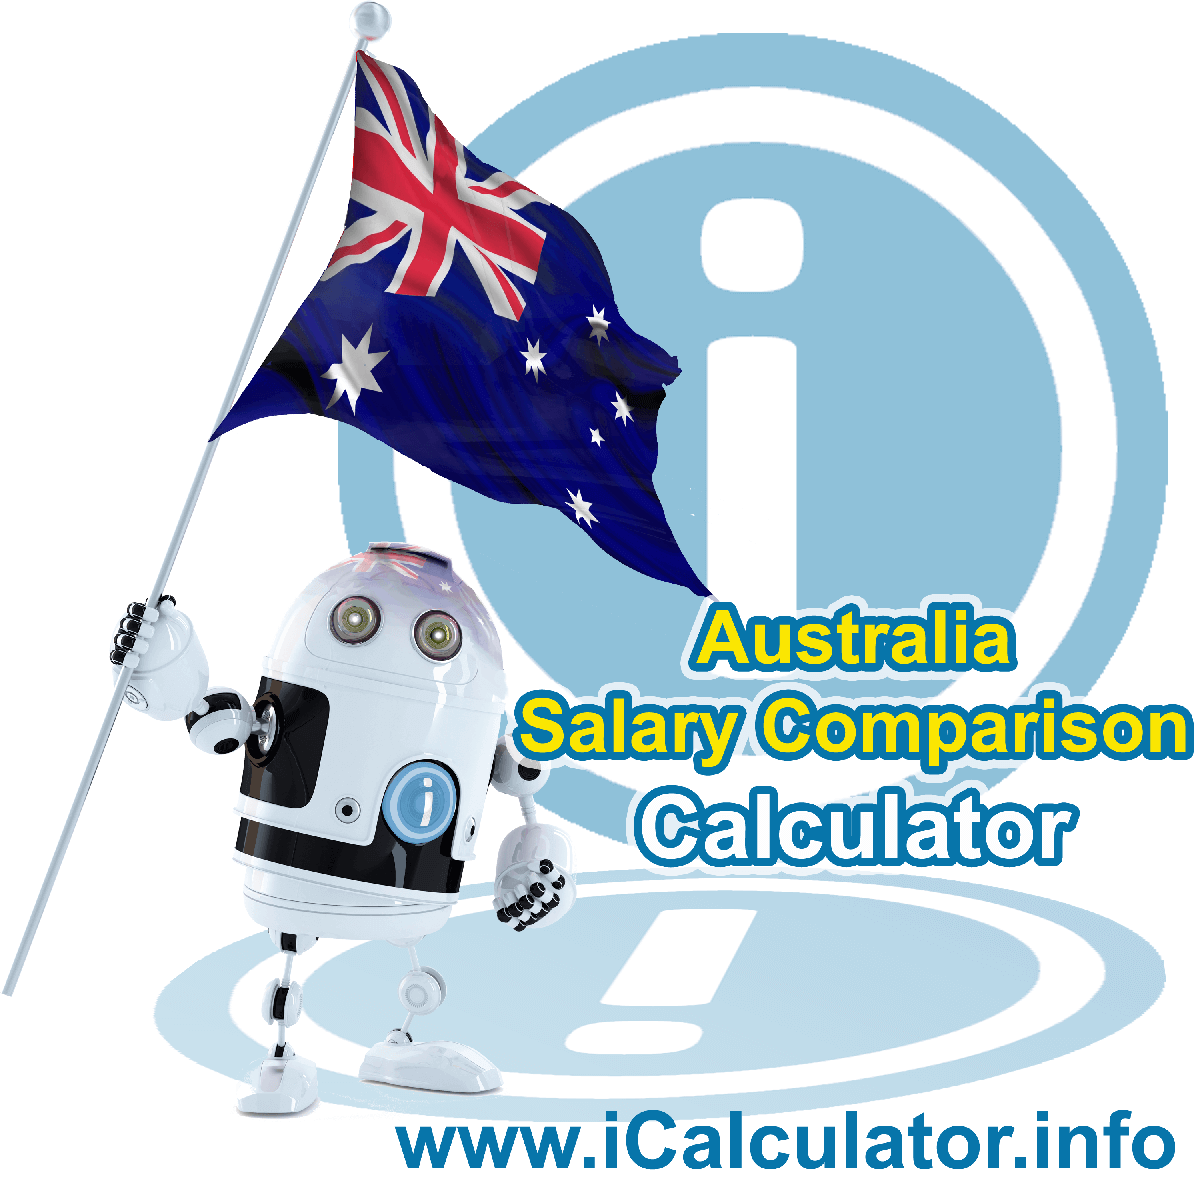 Australia Daily Salary Comparison Calculator. This image shows the Australia flag and information relating to the income tax formula for the Australia Daily Salary Comparison Calculator